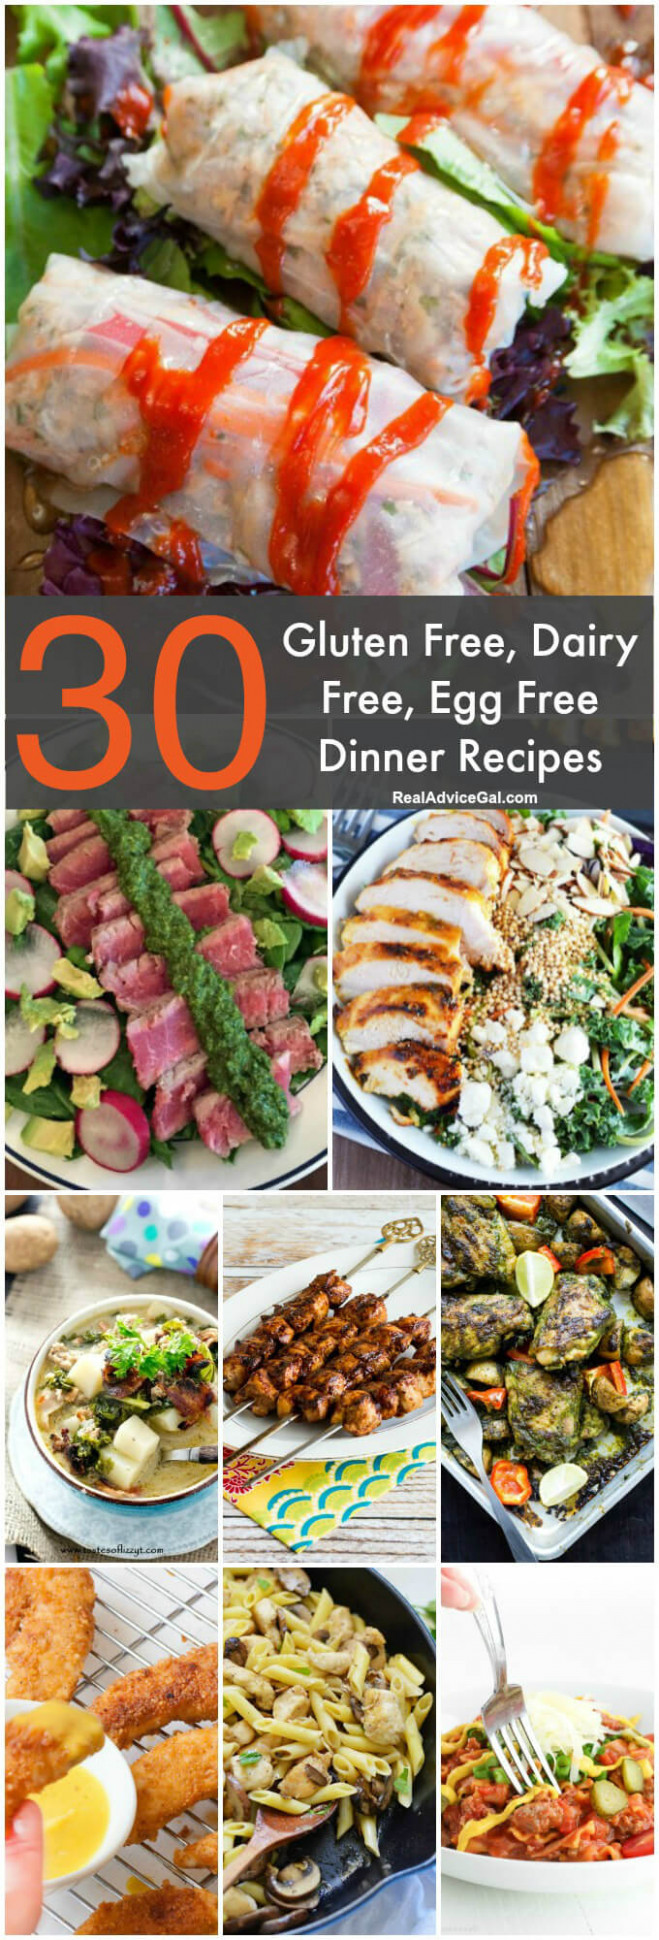 Gluten Free Dairy Free Egg Free Recipes - Real Advice Gal - Healthy Recipes Dairy Free